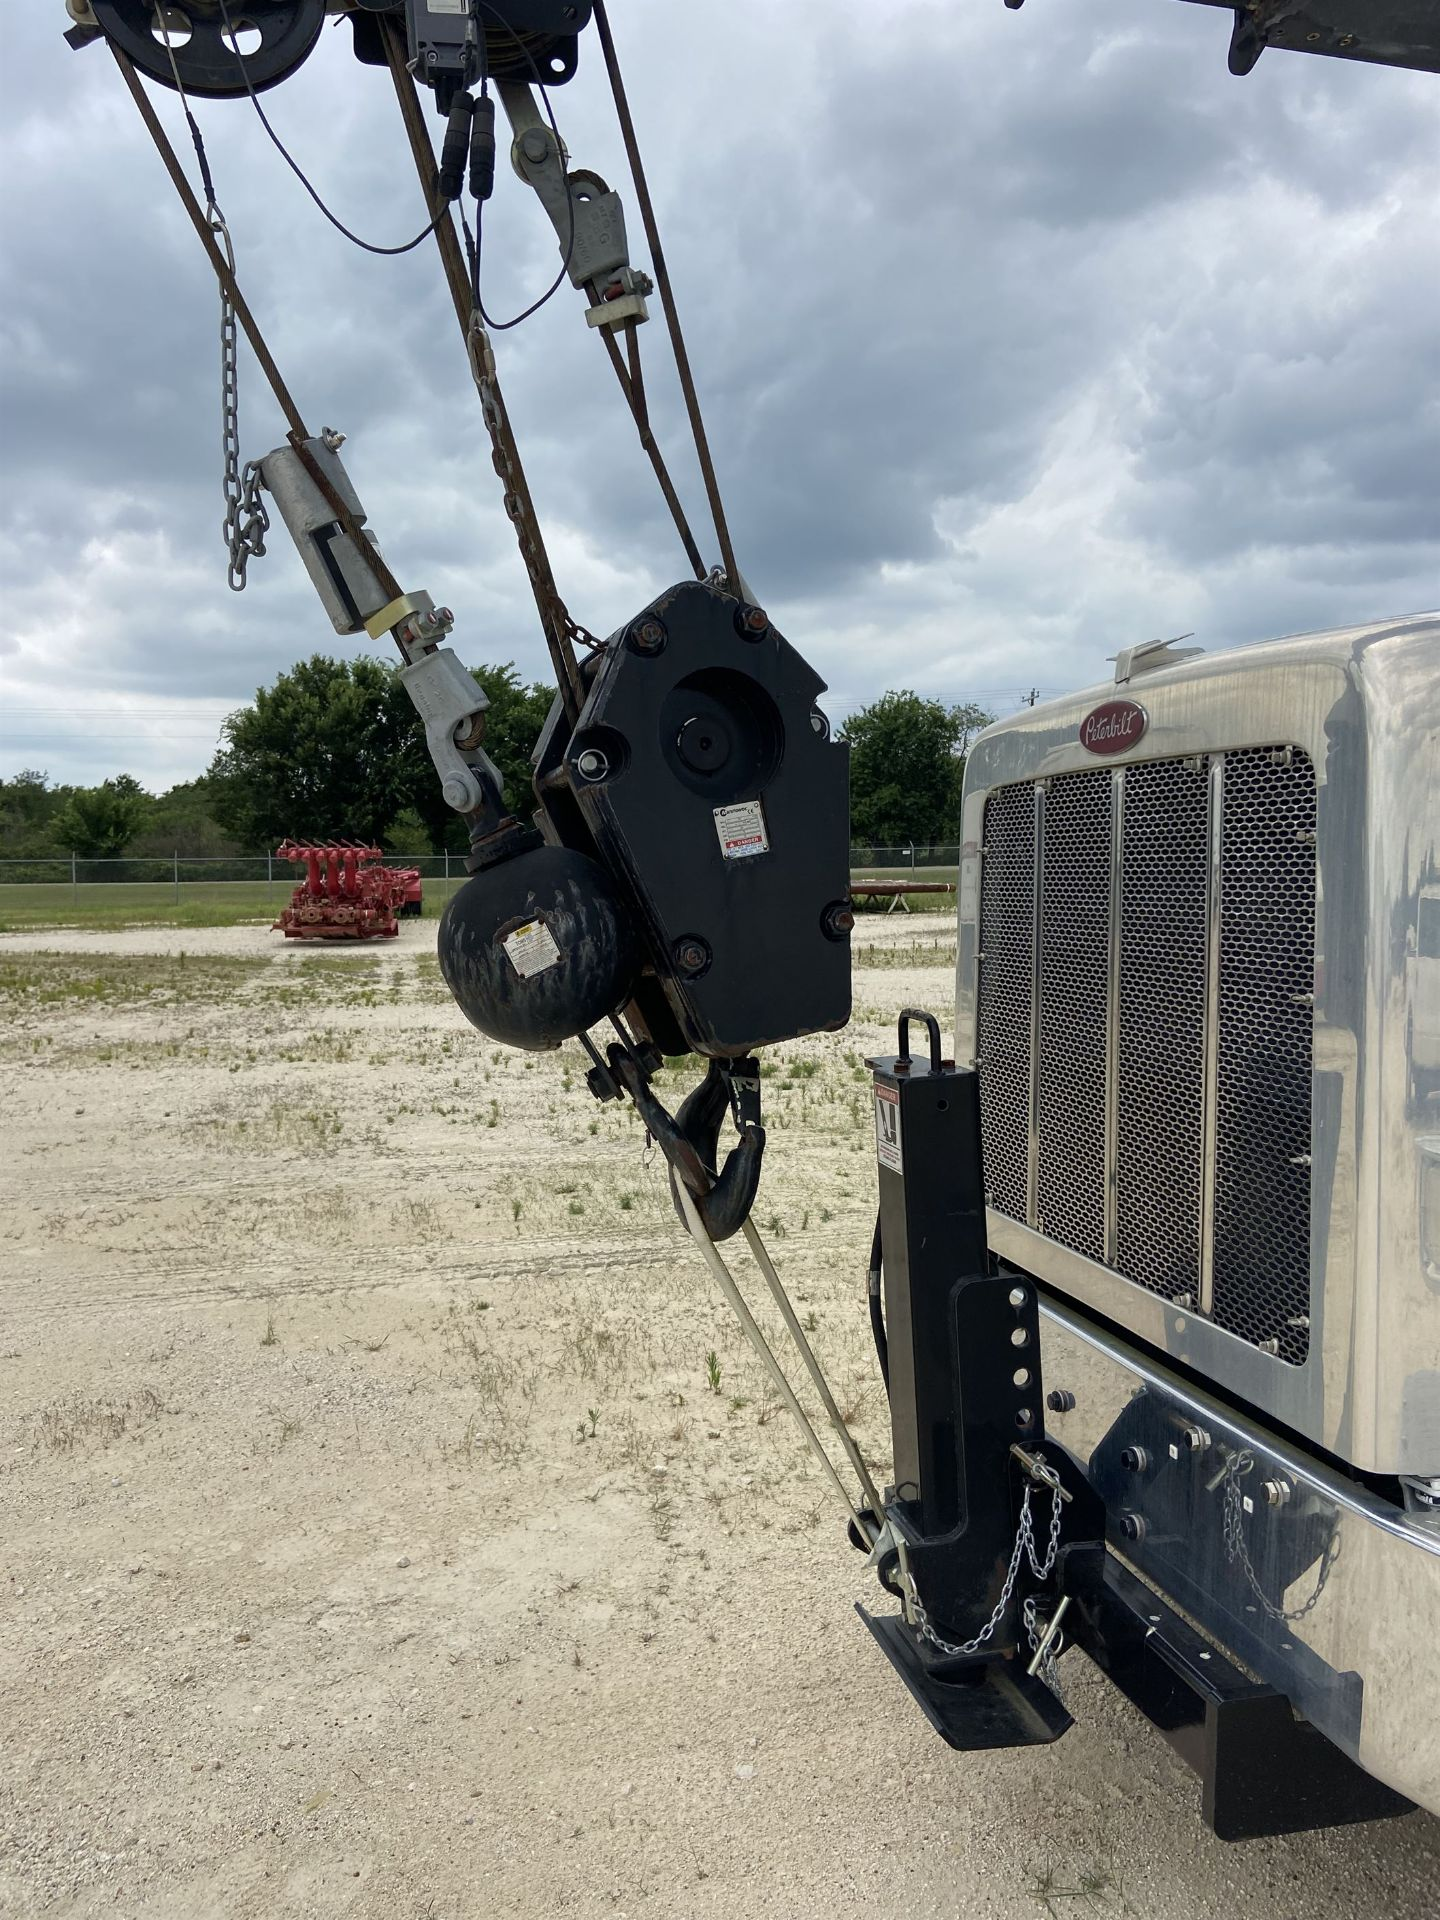 2014 NATIONAL NBT 40 Mobile Swing Truck Crane, s/n 299983, 2,174 Miles, 75.9 Hours - Image 18 of 35